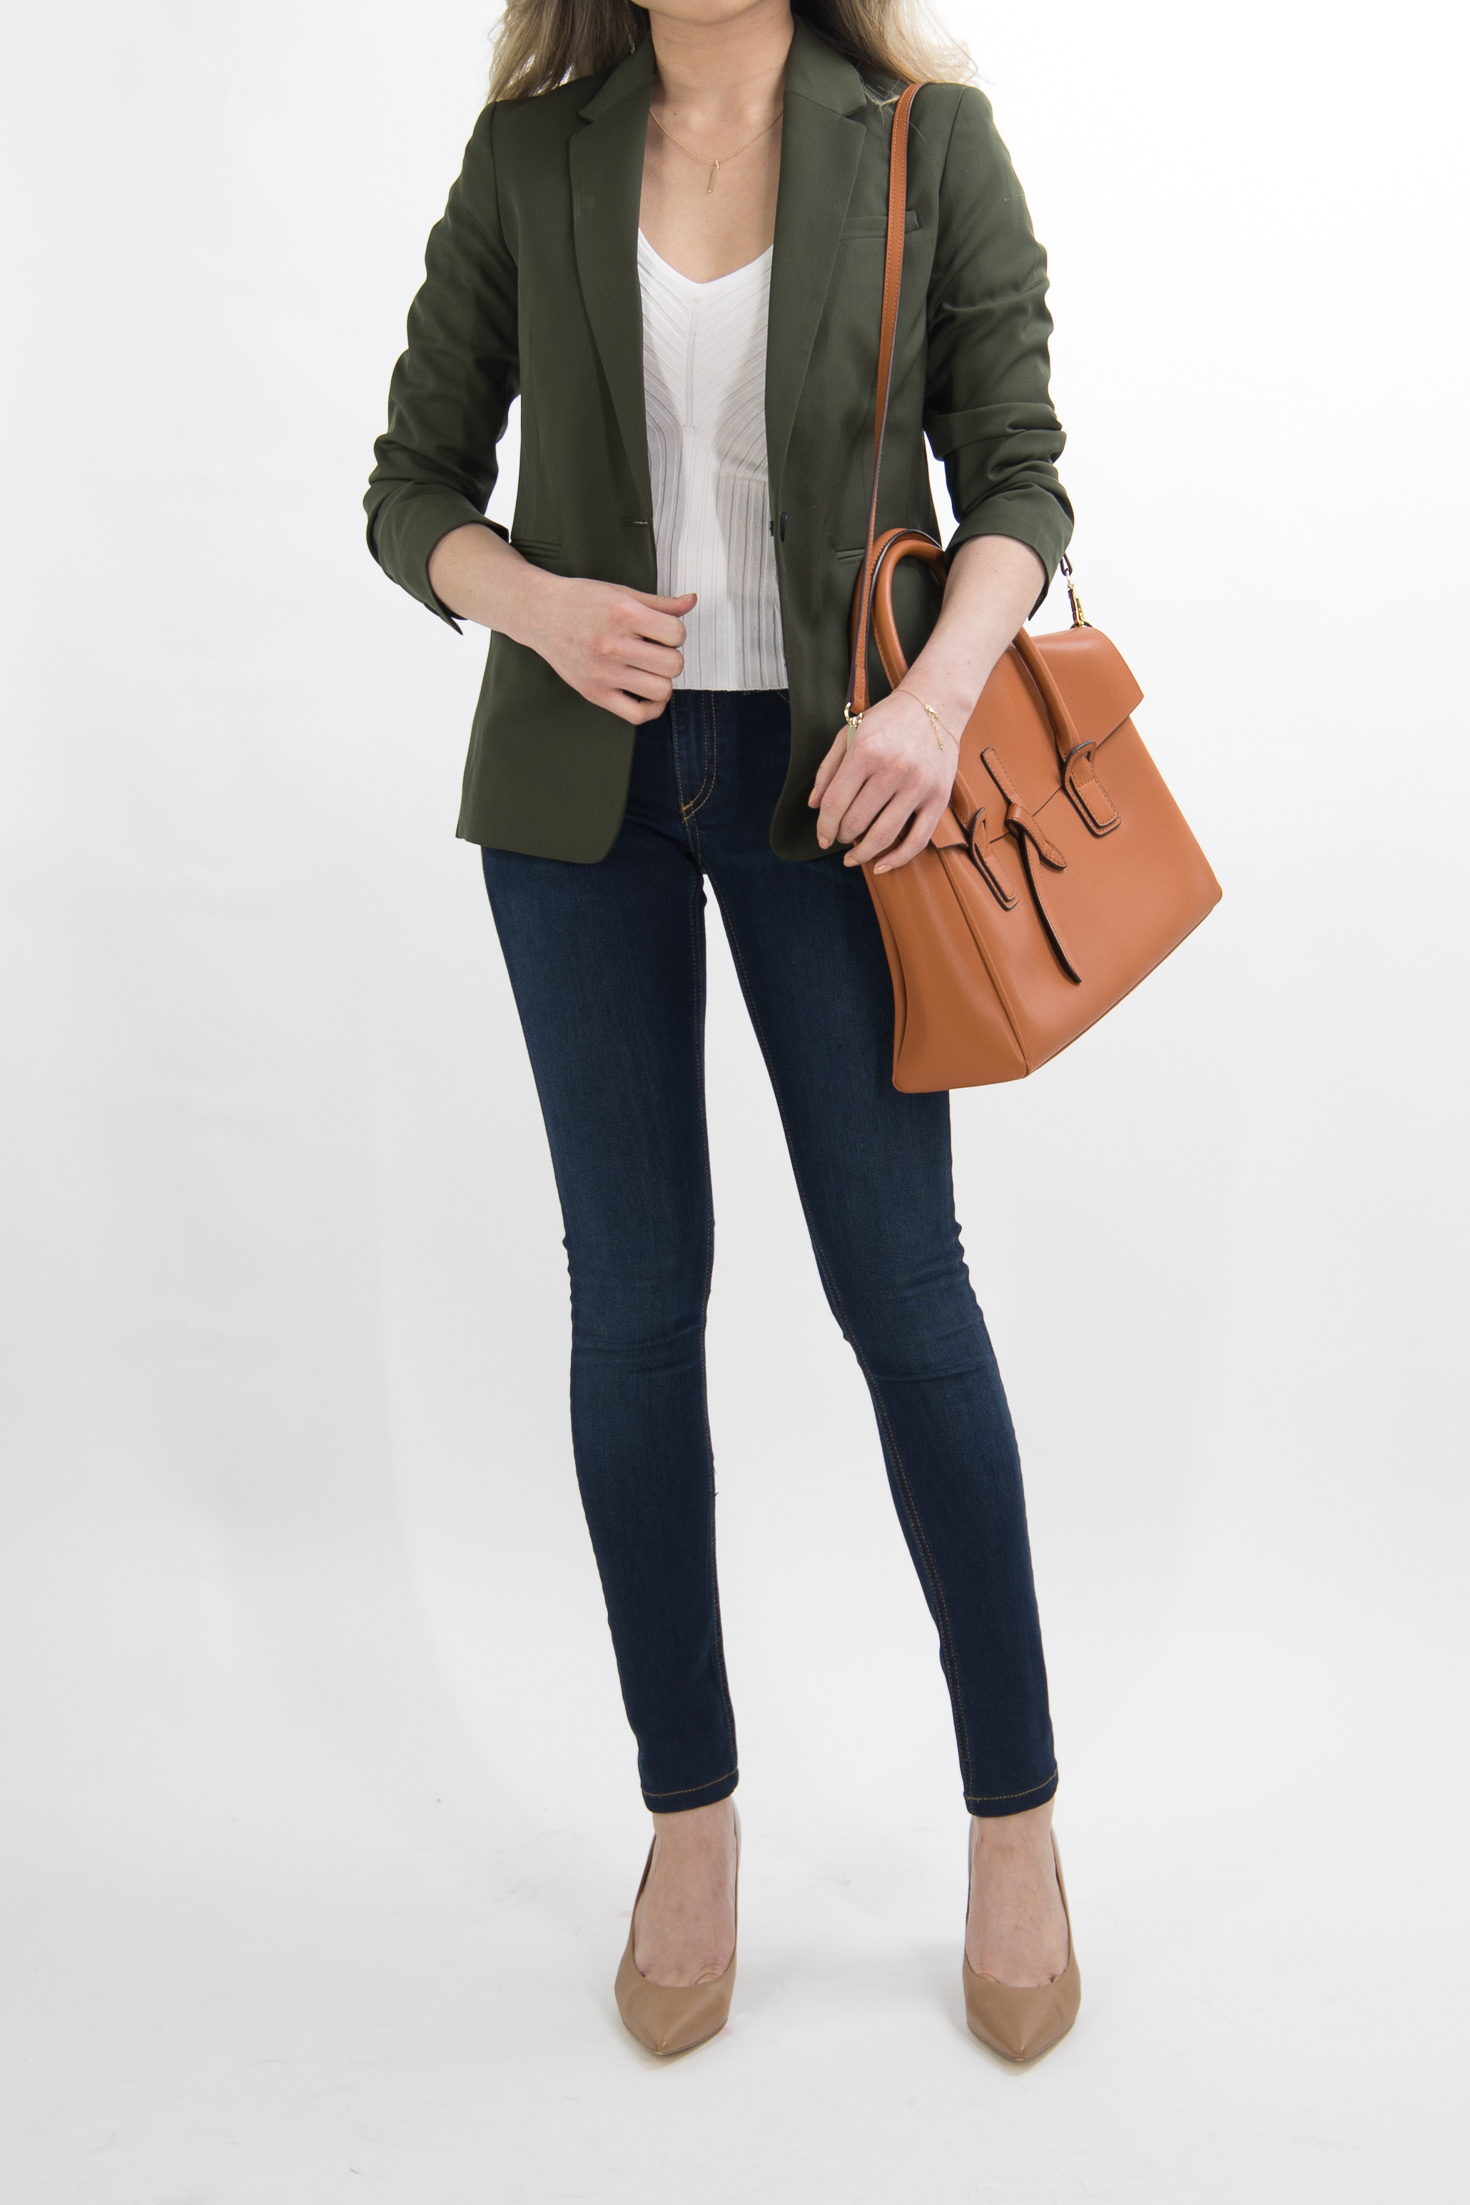 Pictures Of Business Casual For Women Cheap Online